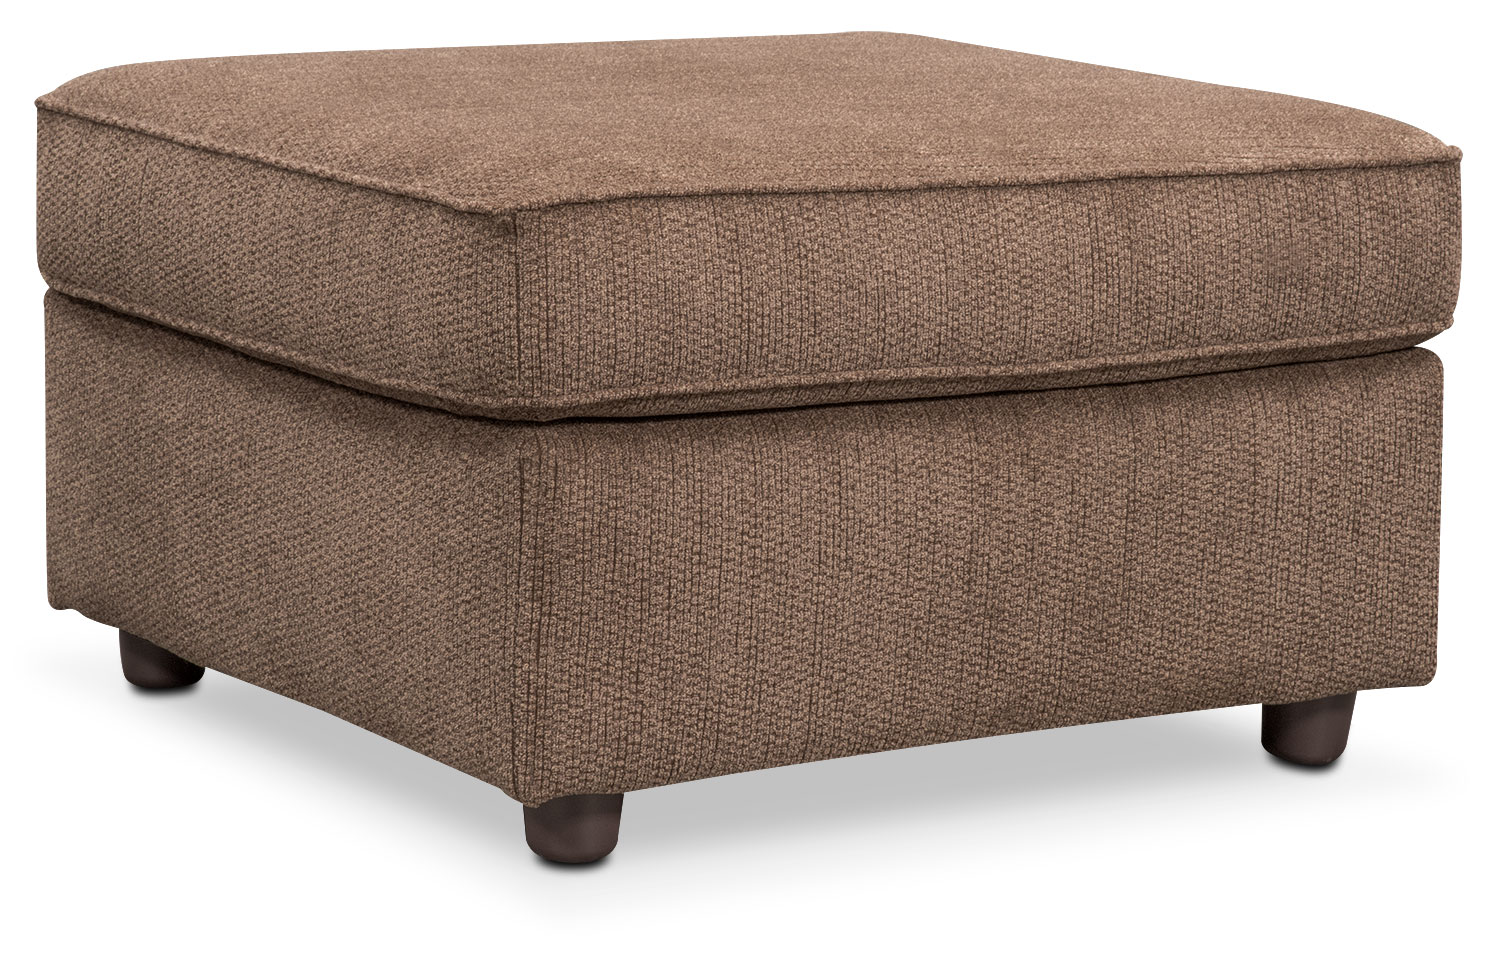 Living Room Furniture - Lakelyn Ottoman - Cocoa